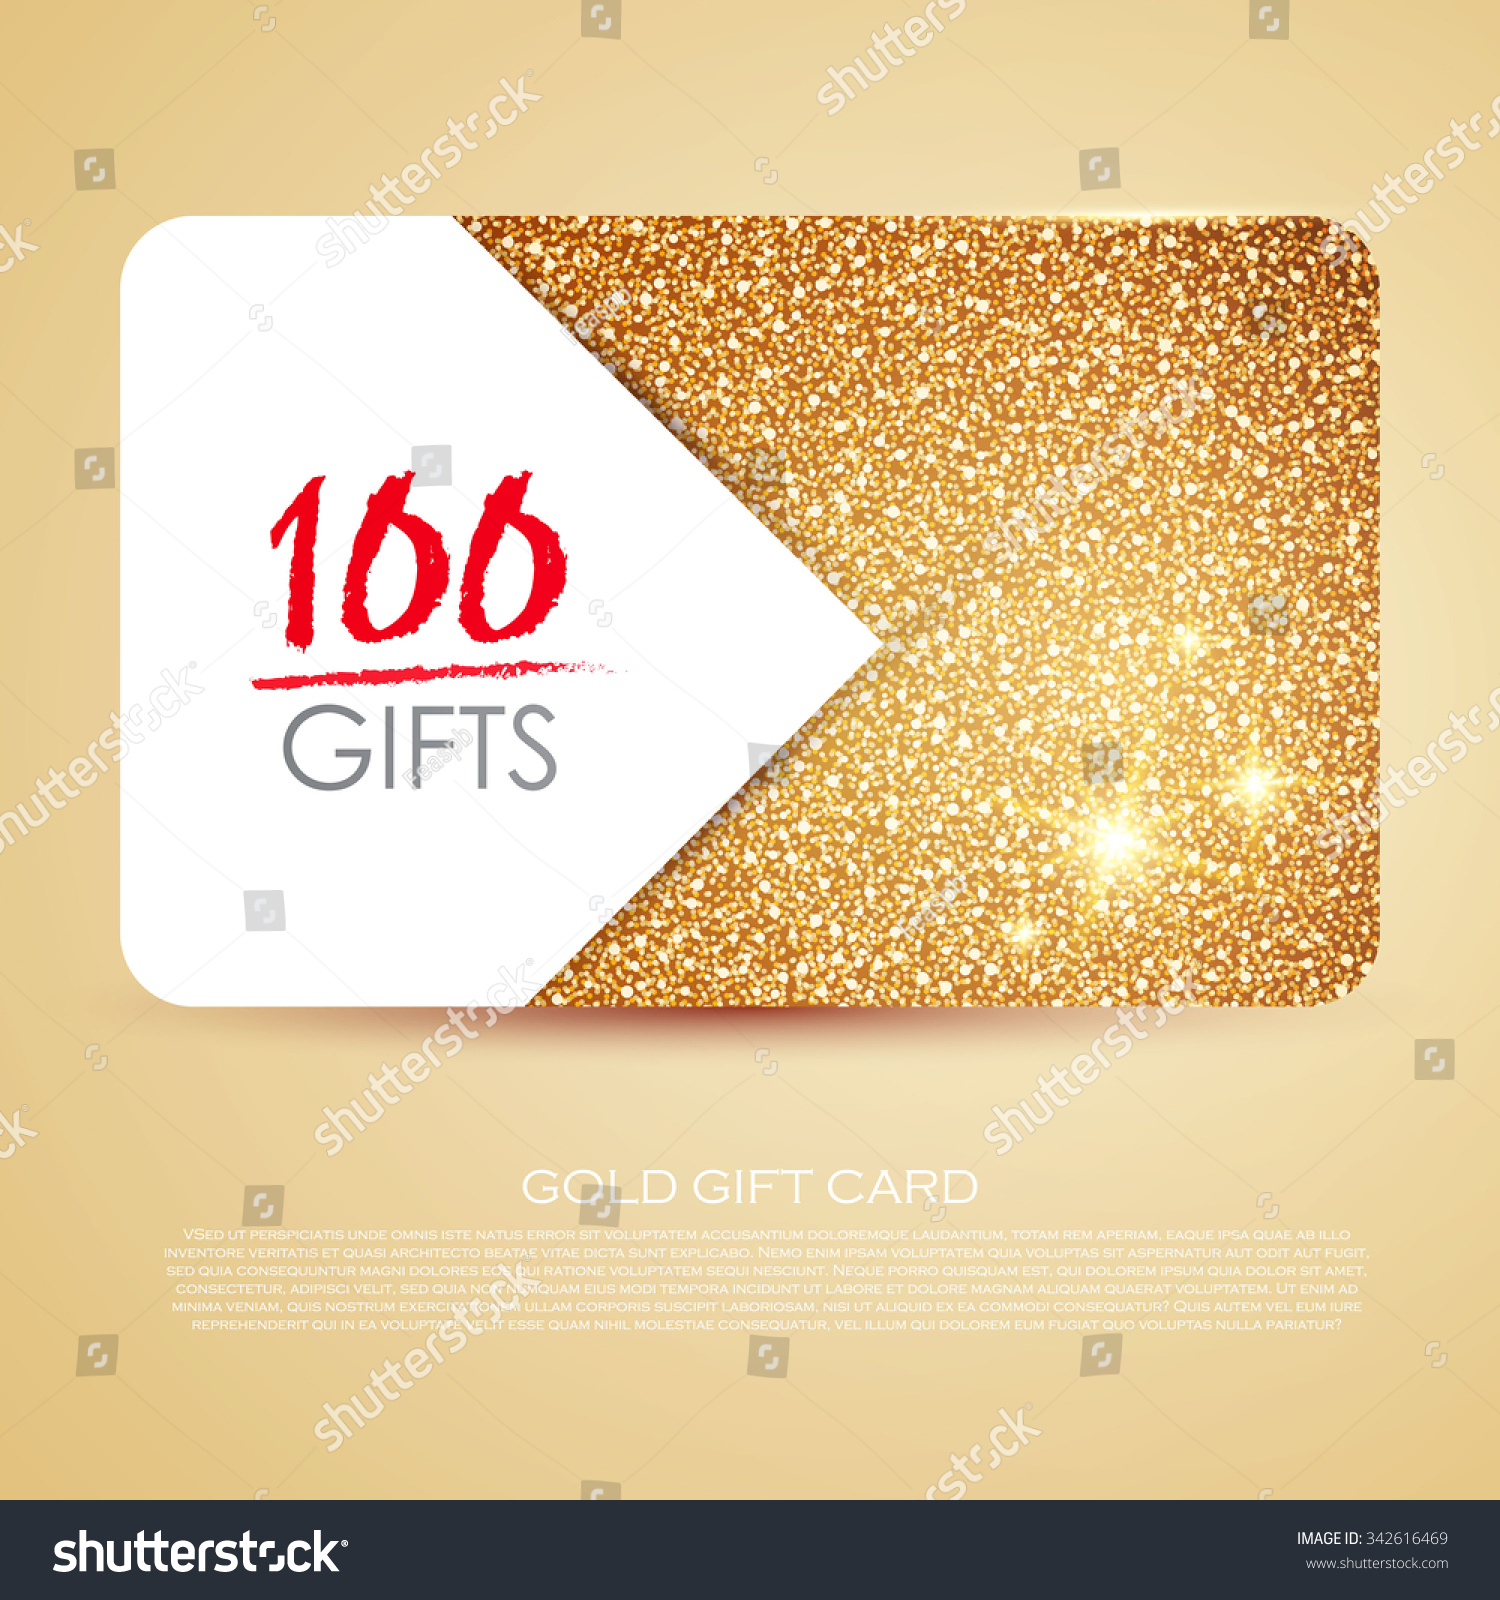 Gold Gift Coupon Gift Card Discount Stock Vector 342616469 ...